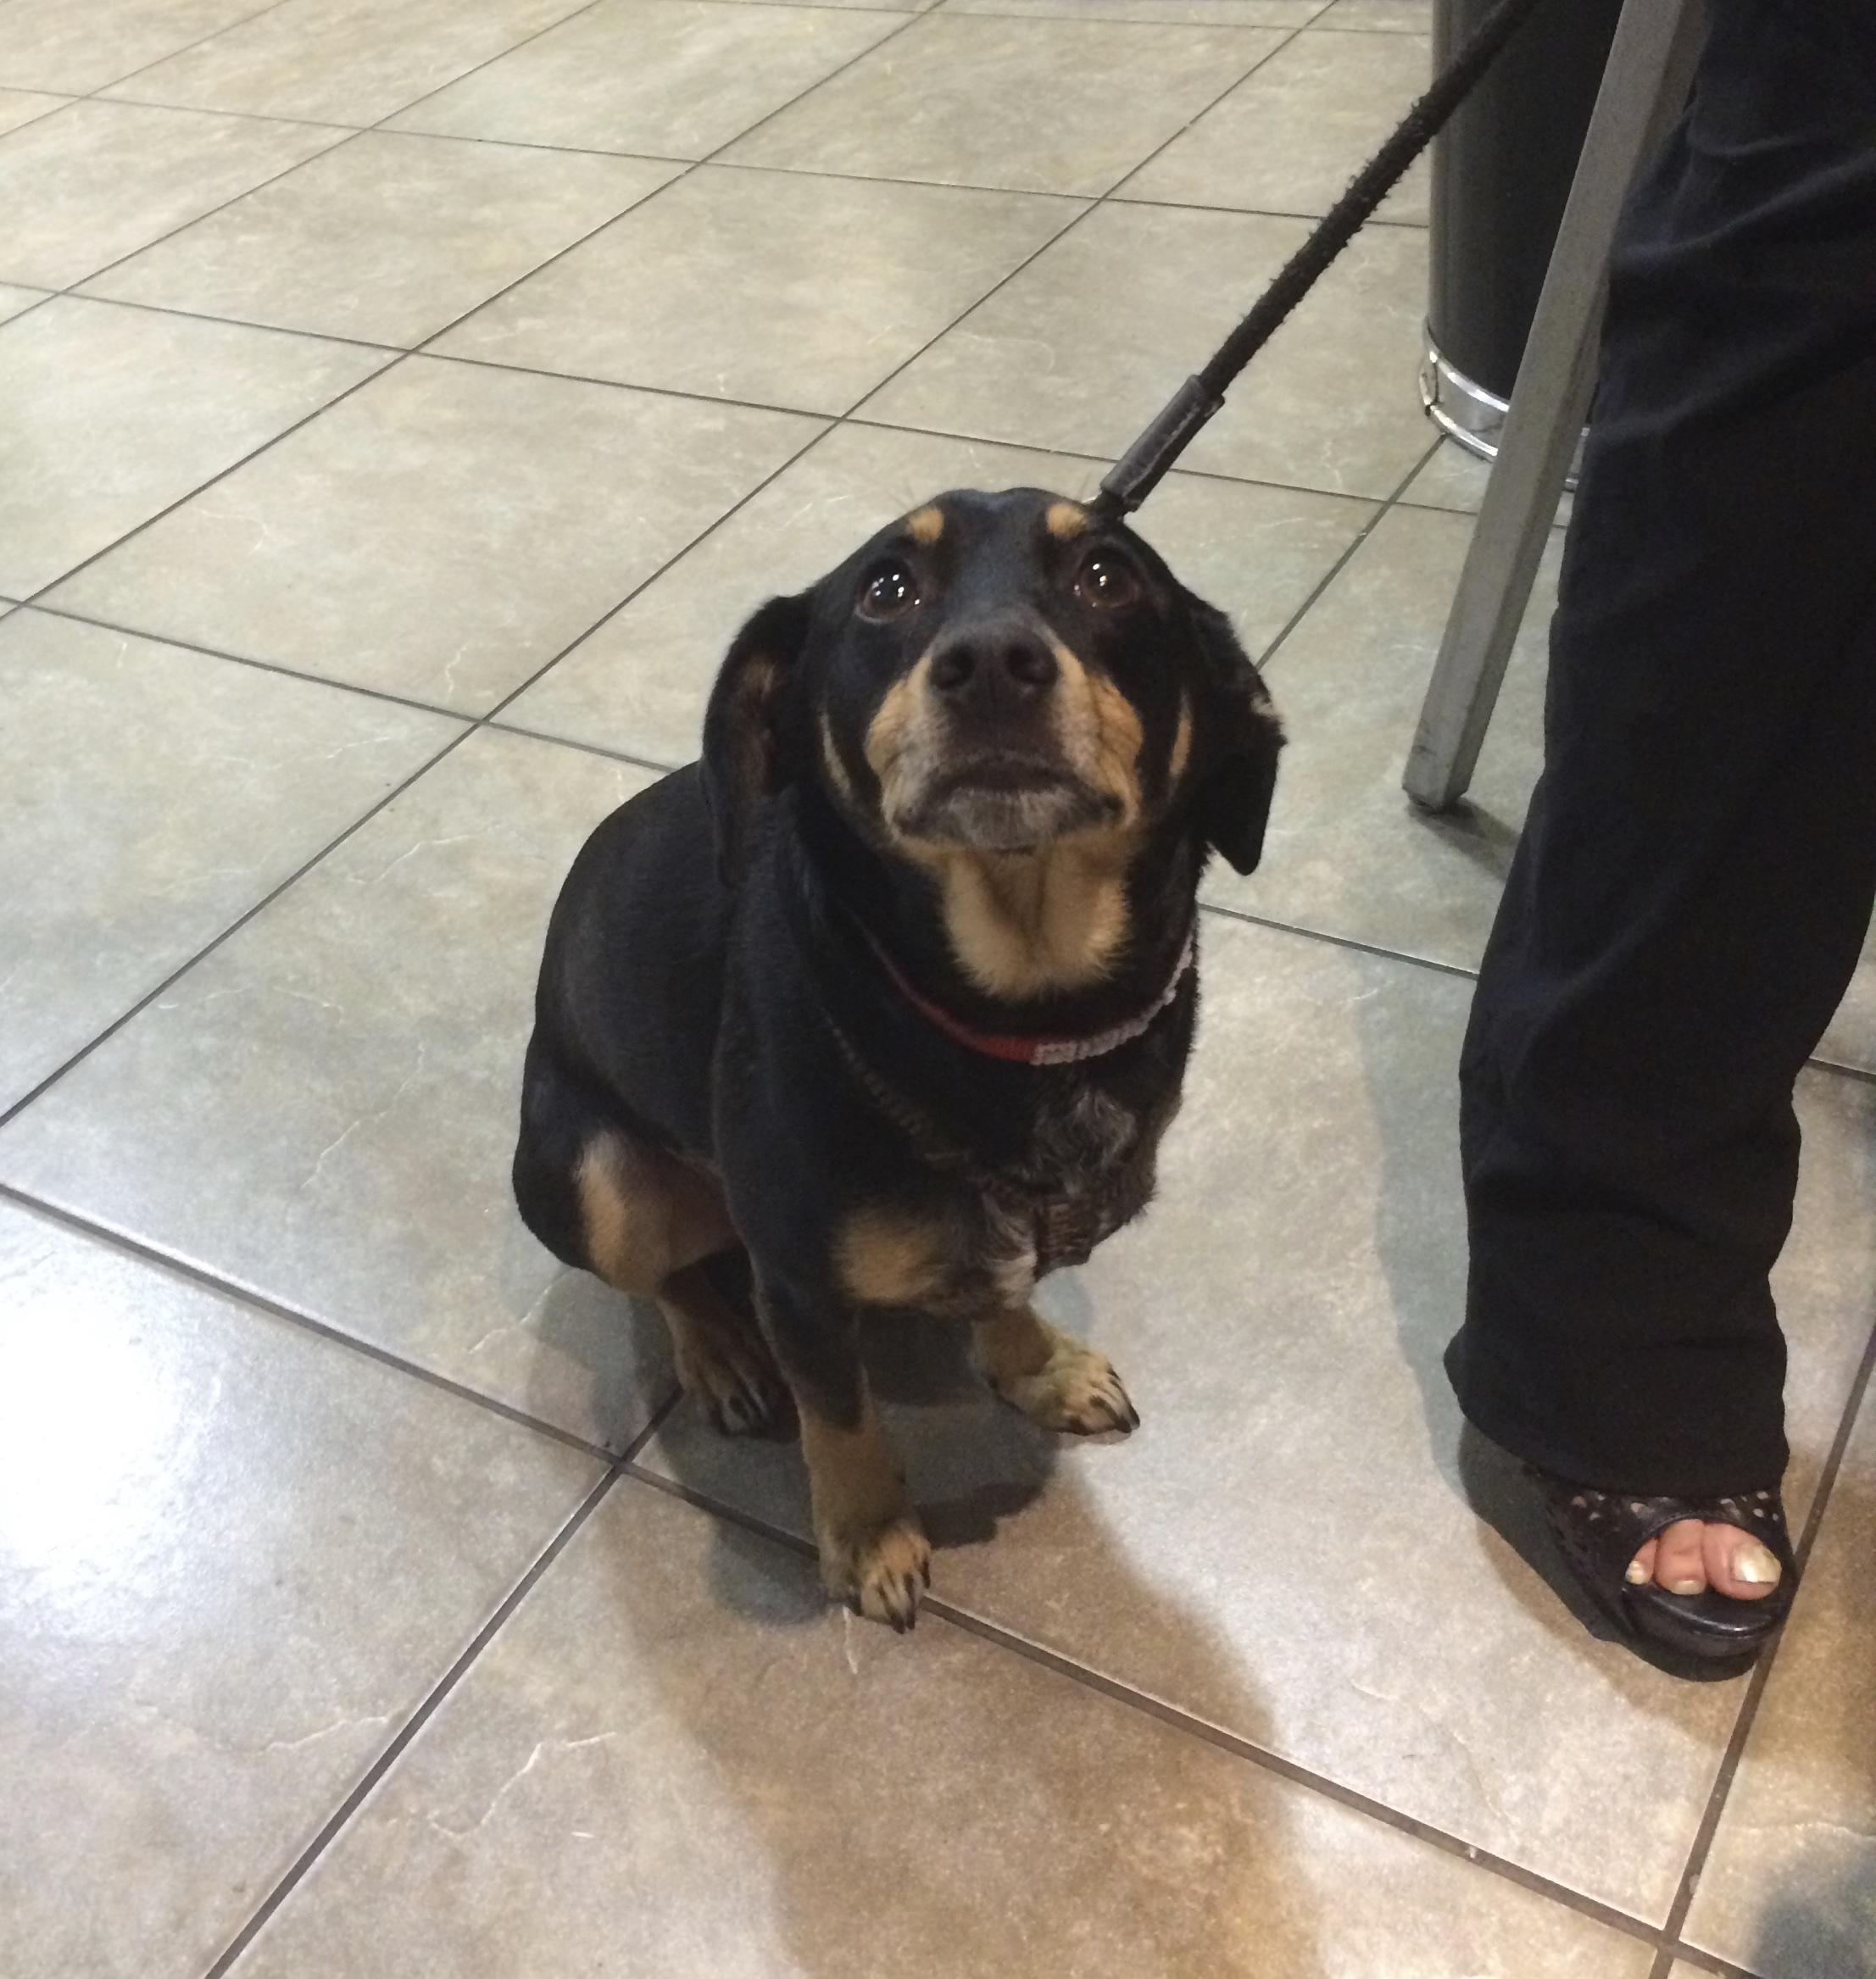 Black And Tan Dachshund Beagle Mix Sitting And Looking Very Plaintive